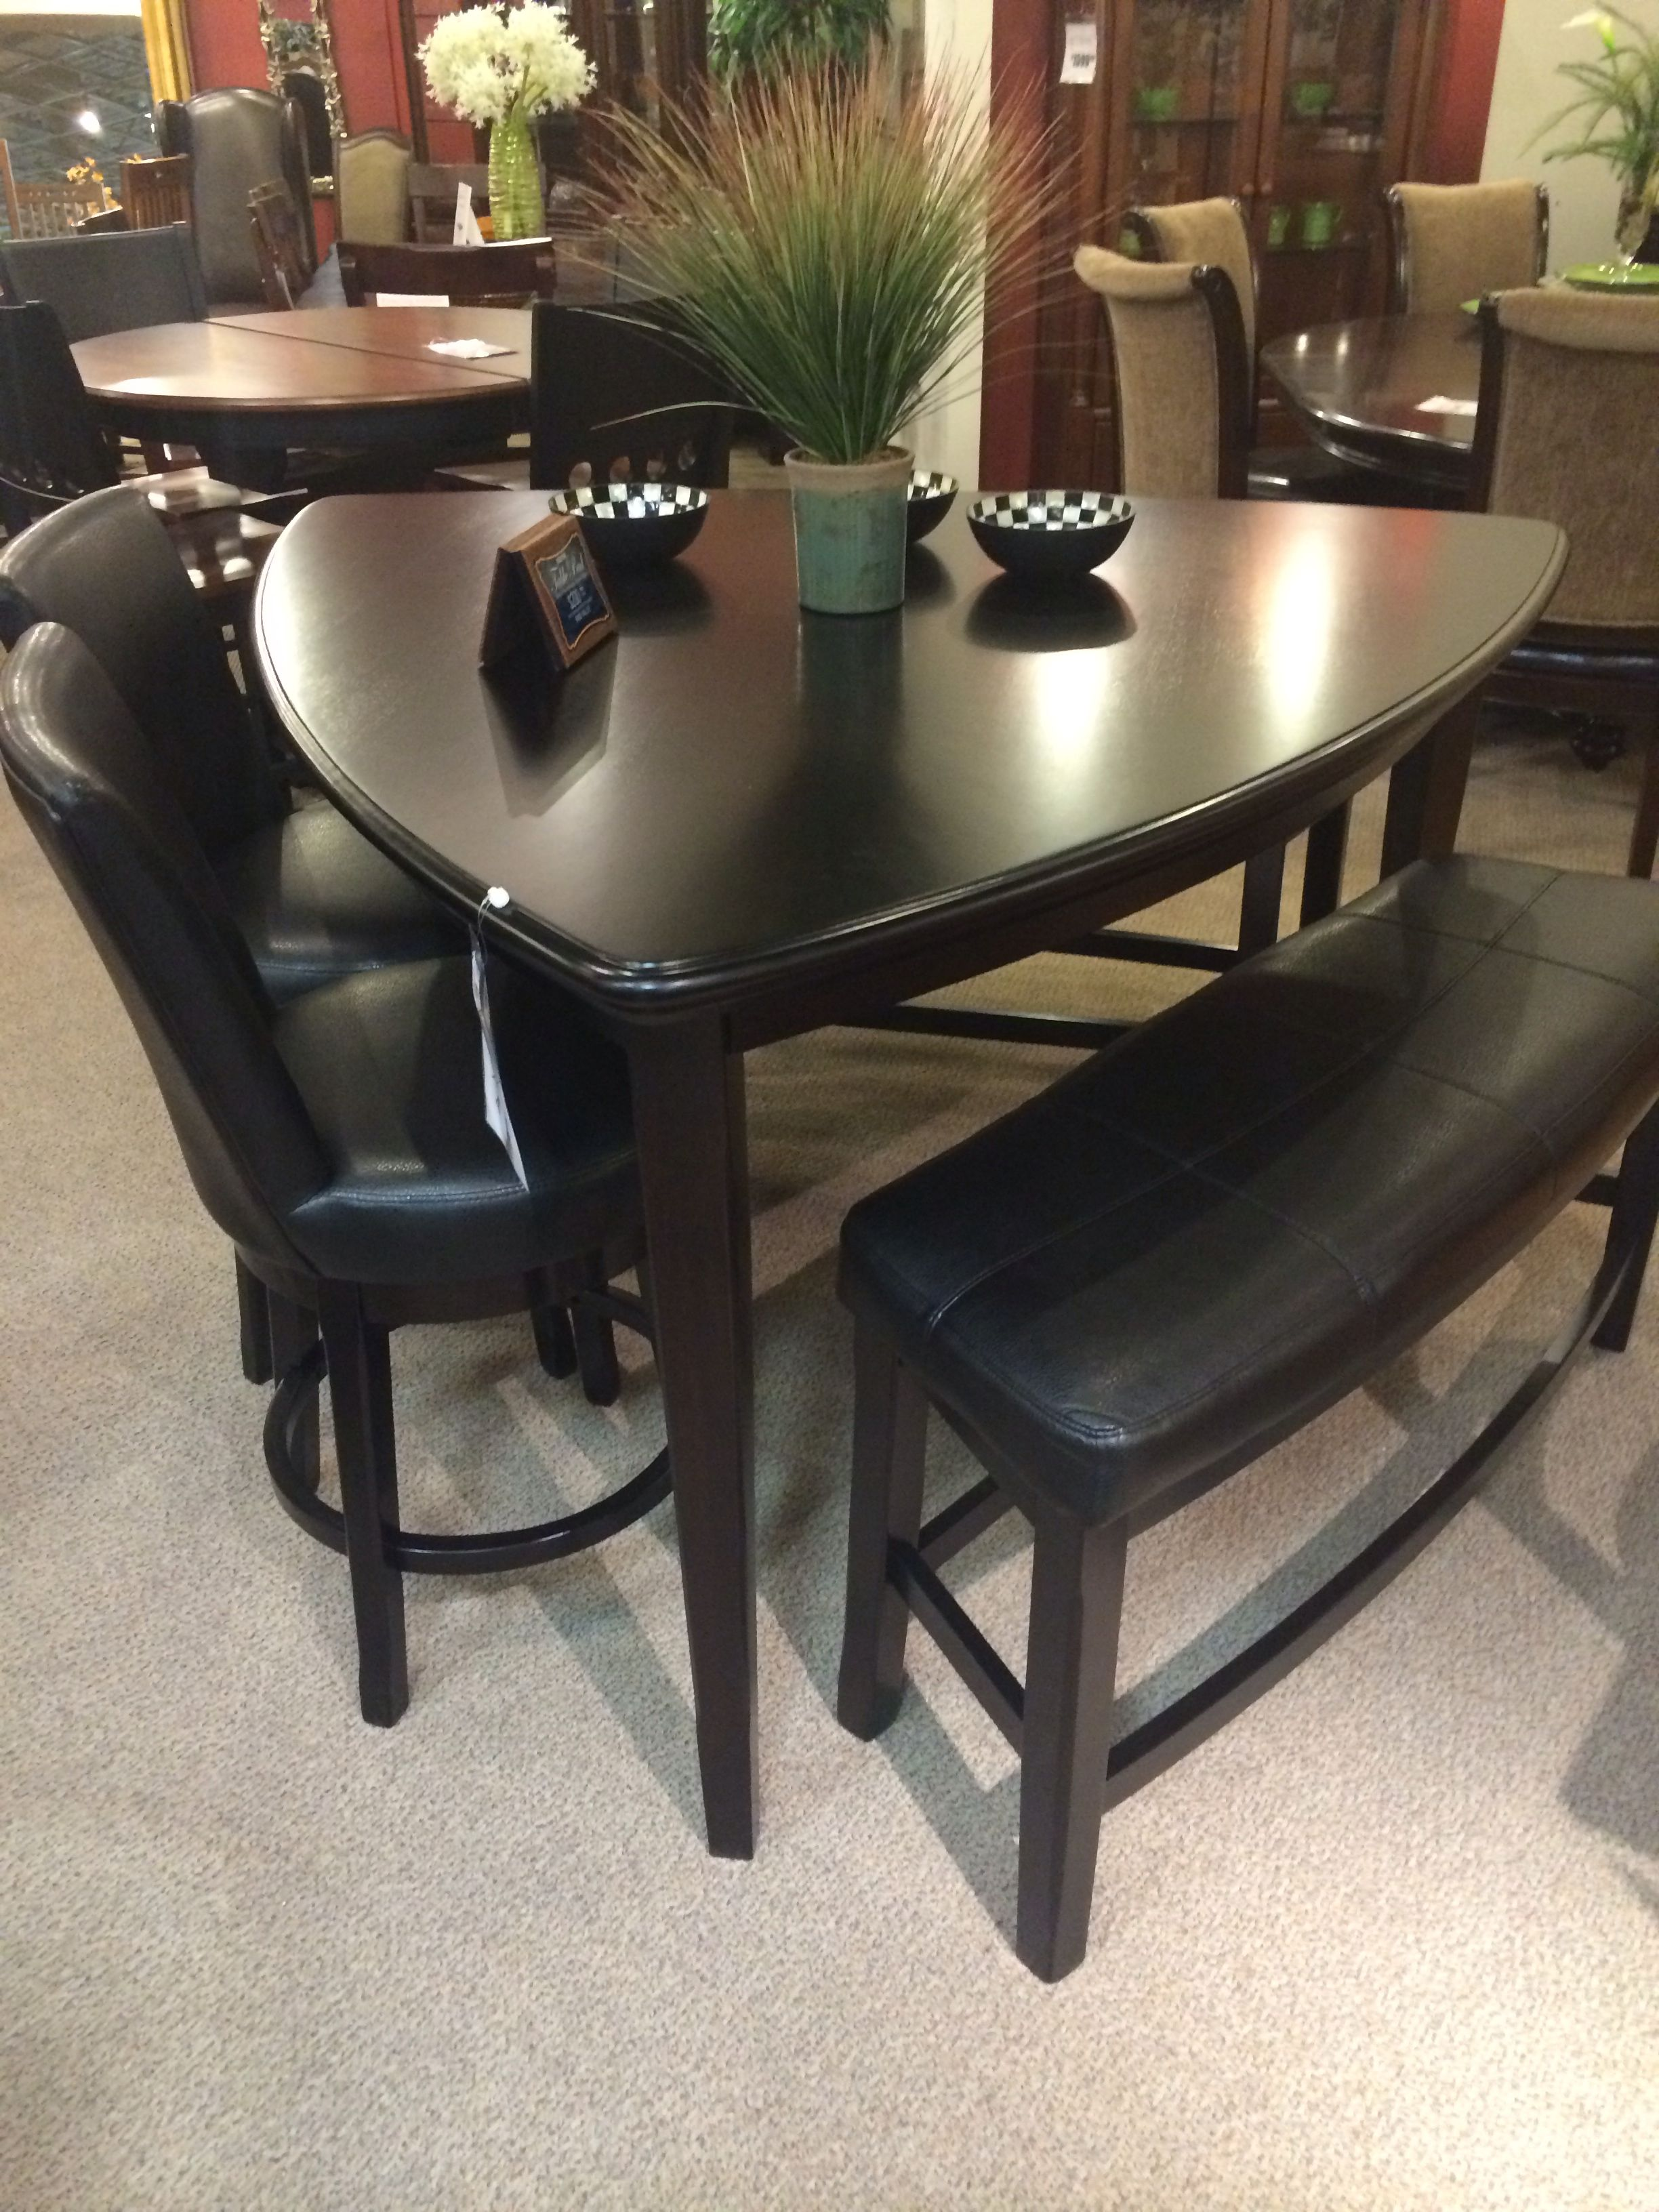 Triangle Table From Homemakers Small Kitchen Table Sets Modern Kitchen Tables Dining Room Small